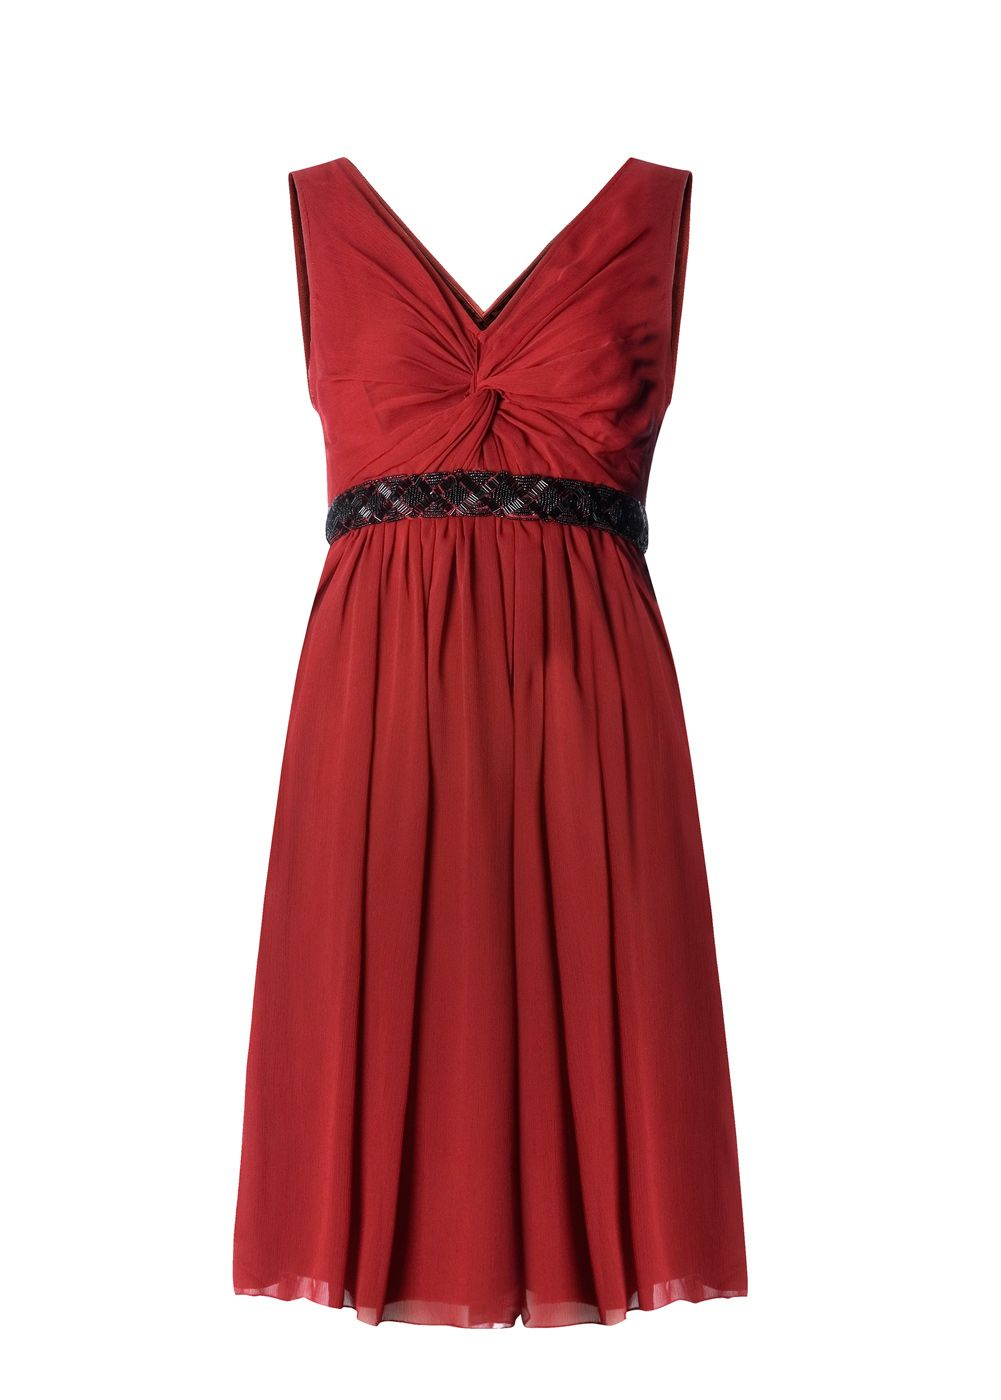 Cocktail dresses wedding  Love a Red Cocktail Dress  Needs  Pinterest  Red cocktails Nice